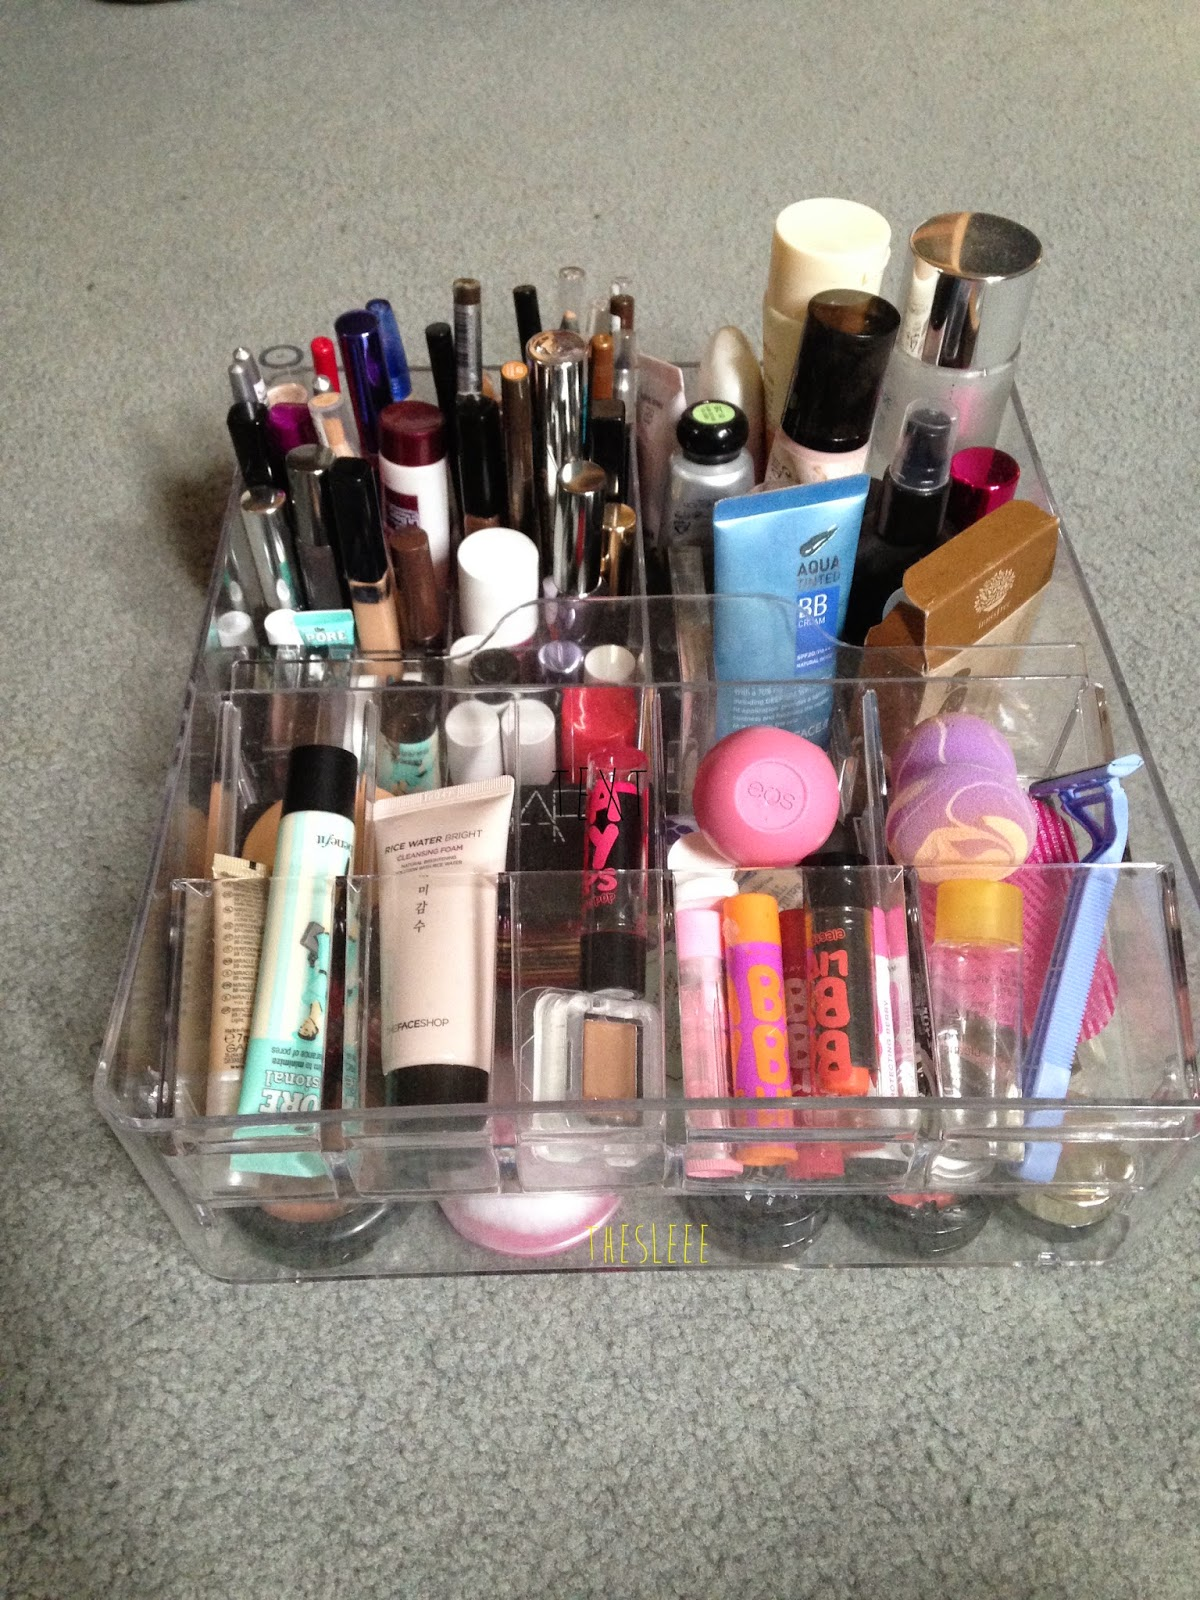 The Sleee My Makeup Collection Storage Using The